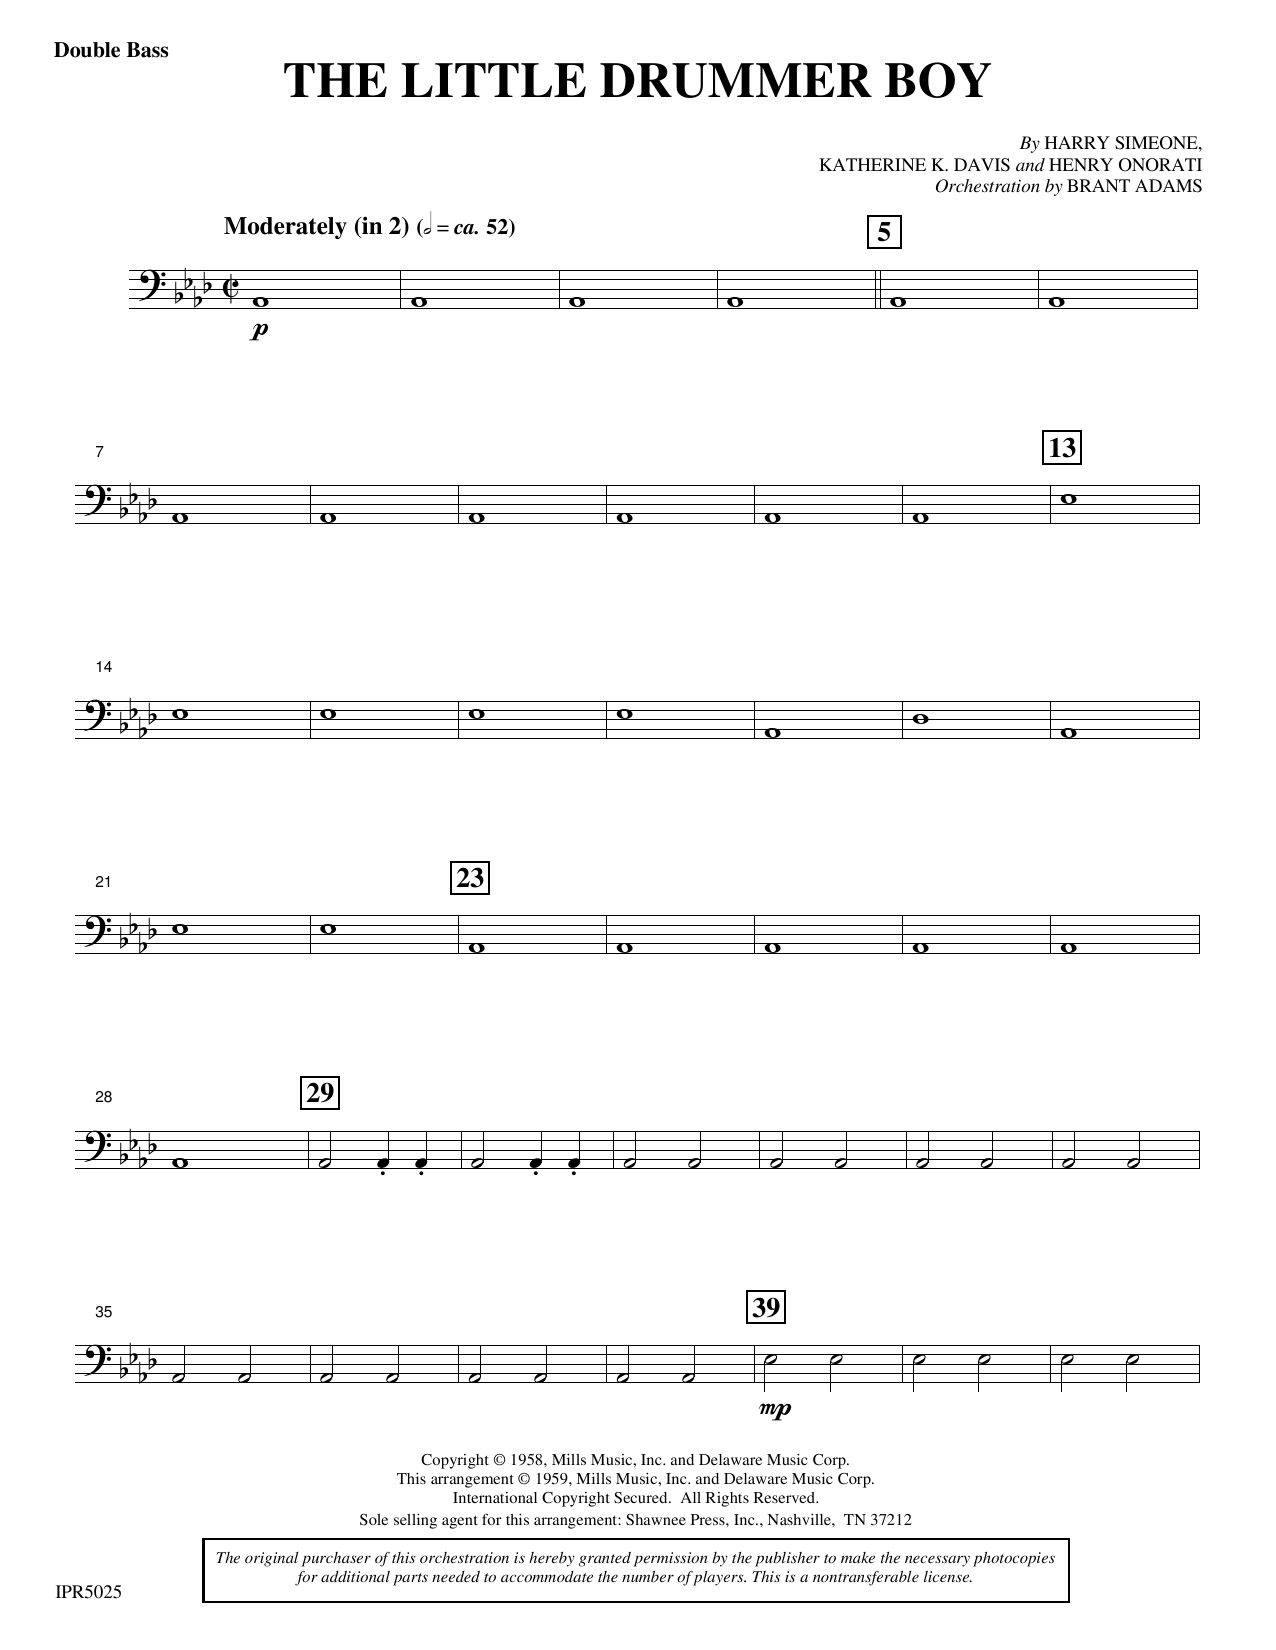 Harry Simeone The Little Drummer Boy - Double Bass sheet music notes and chords. Download Printable PDF.